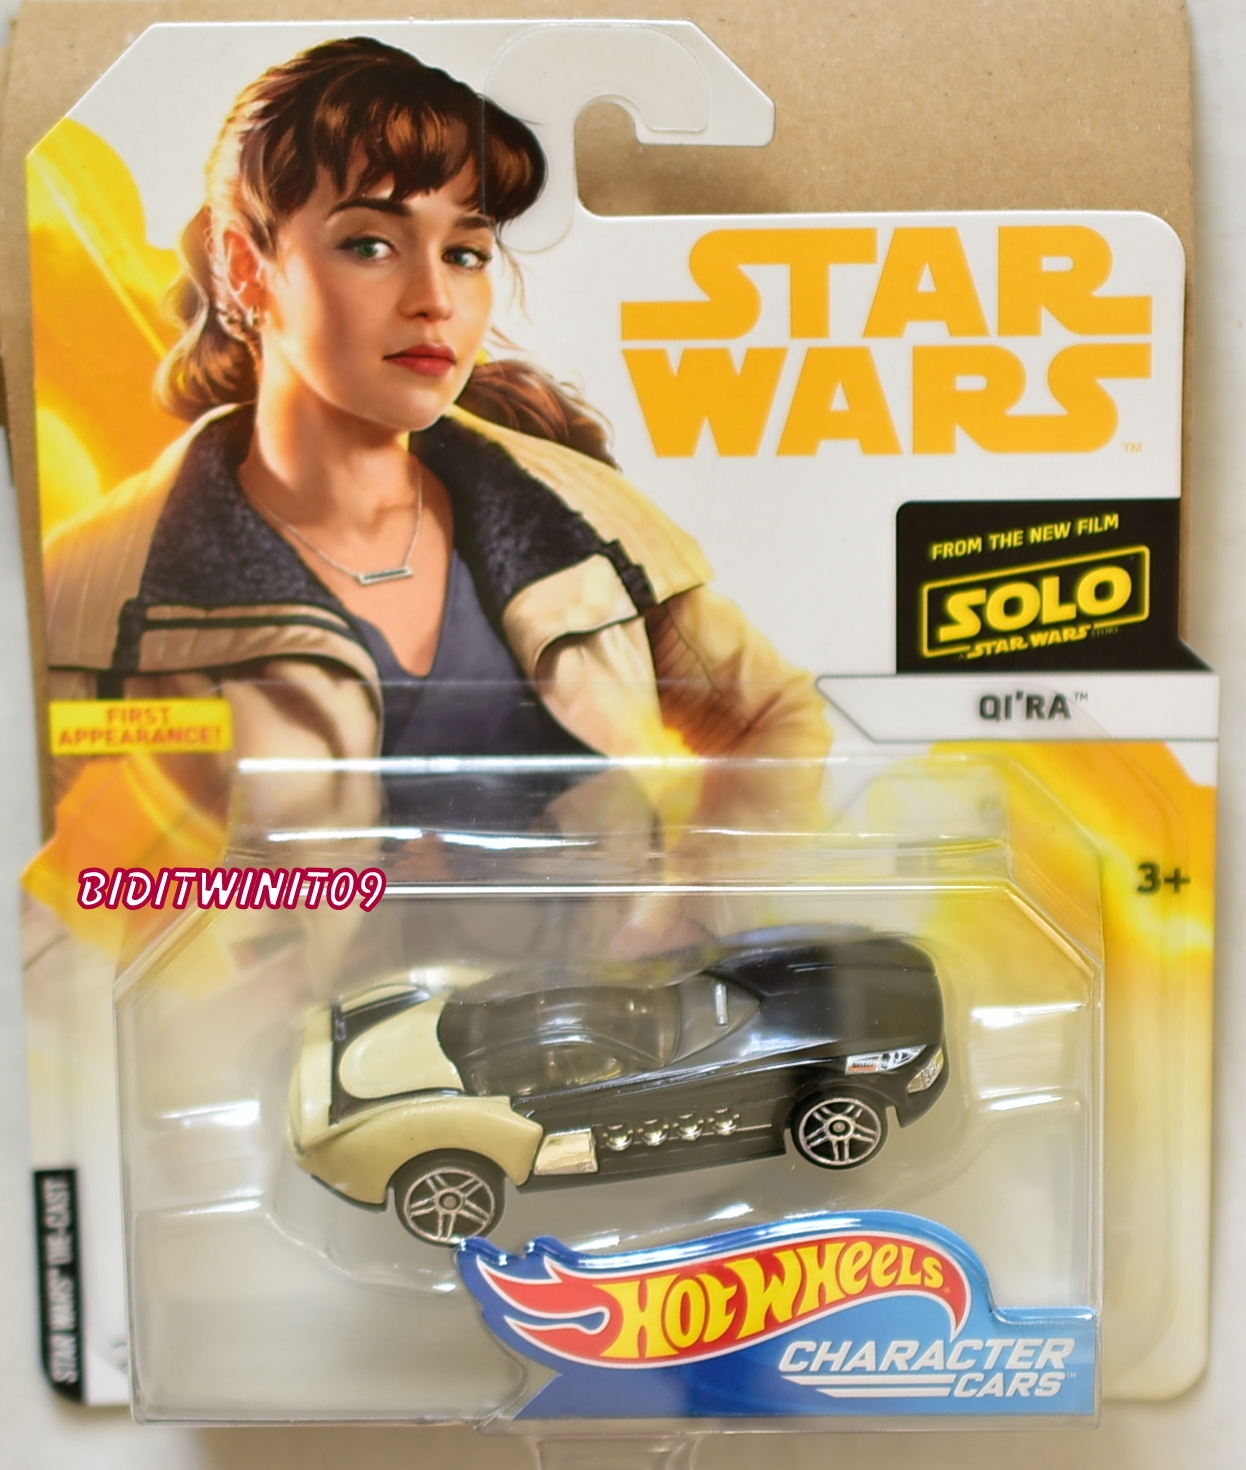 HOT WHEELS 2018 STAR WARS QI'RA CHARACTER CARS E+